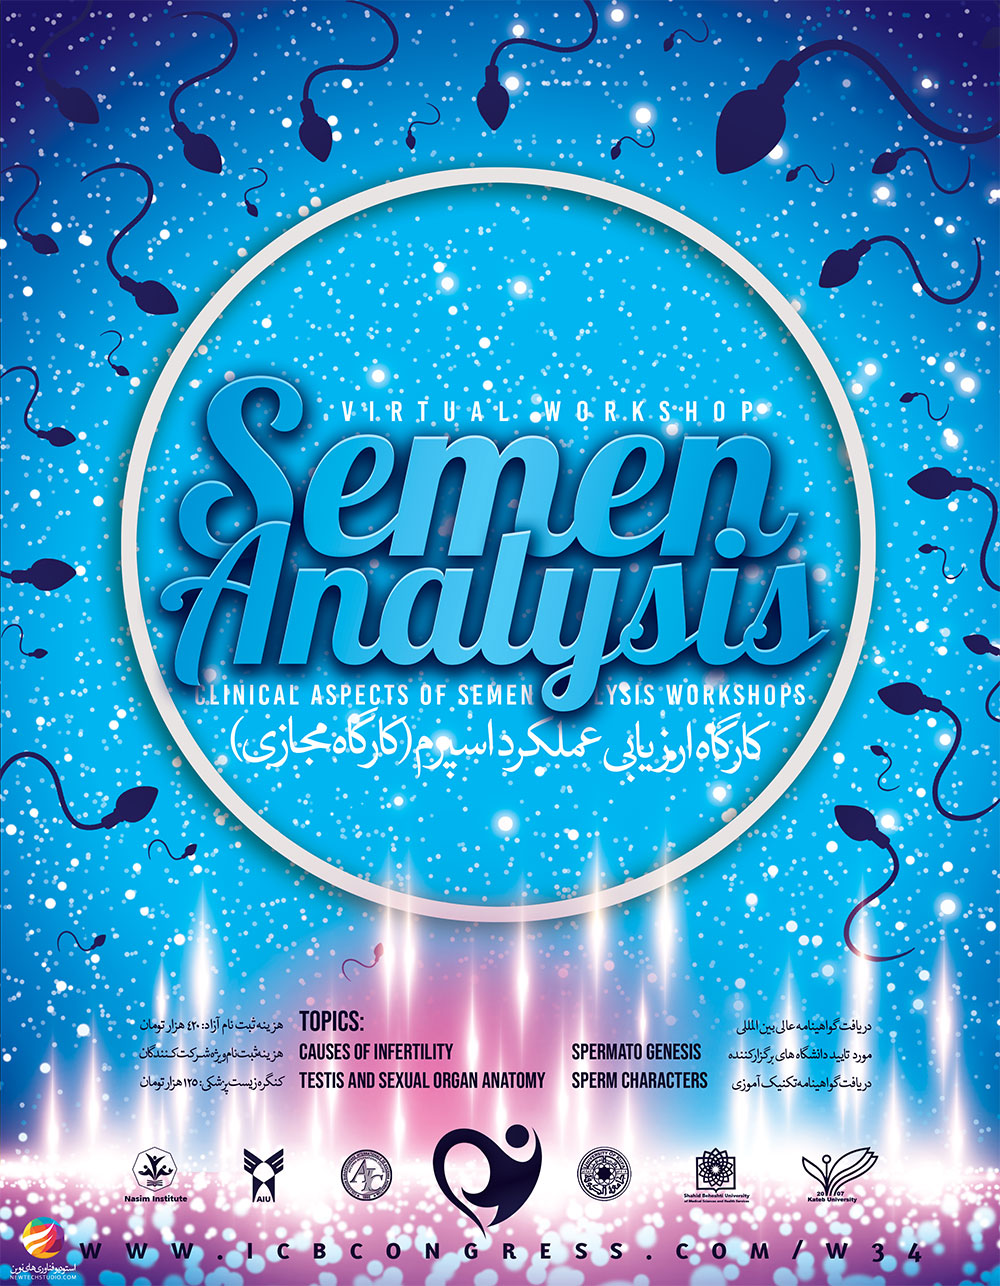 Clinical Aspects of Semen Analysis Workshops